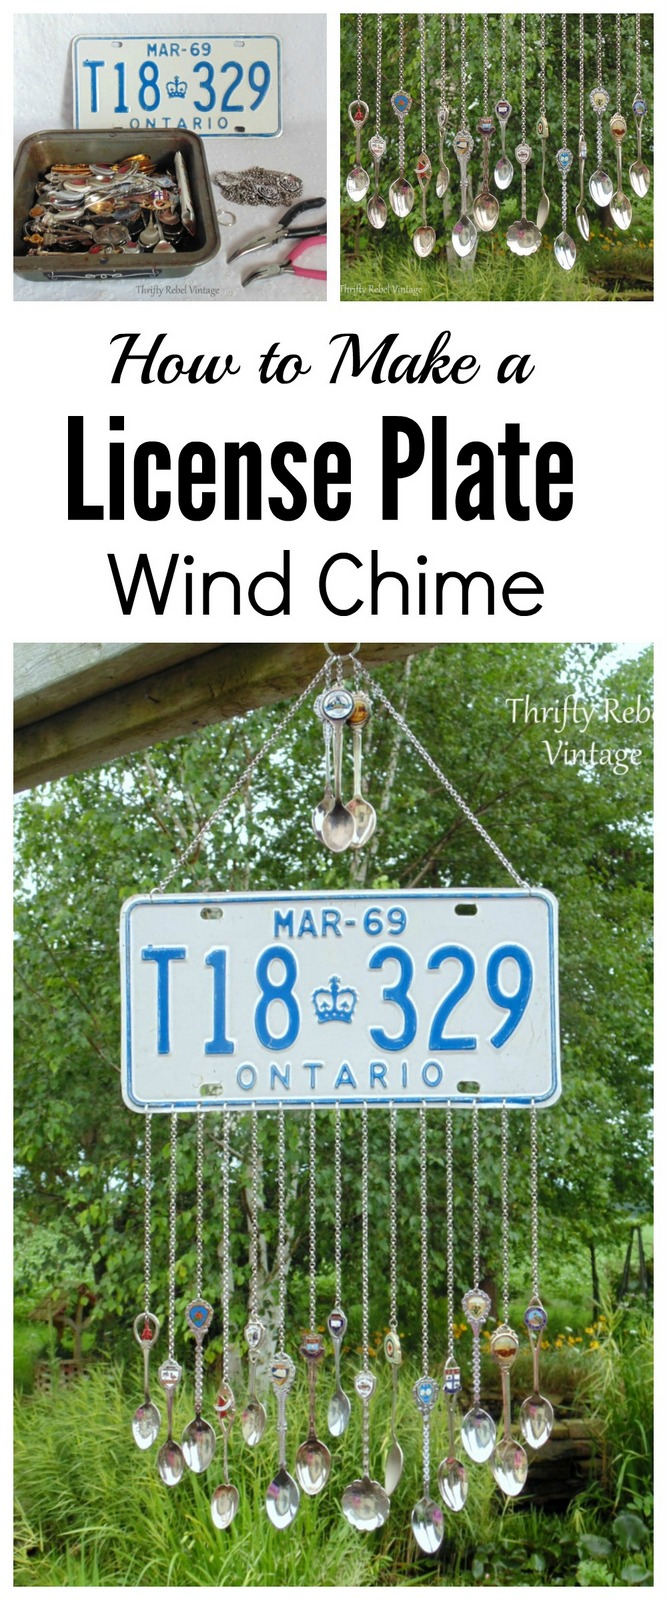 how to make a license plate wind chime